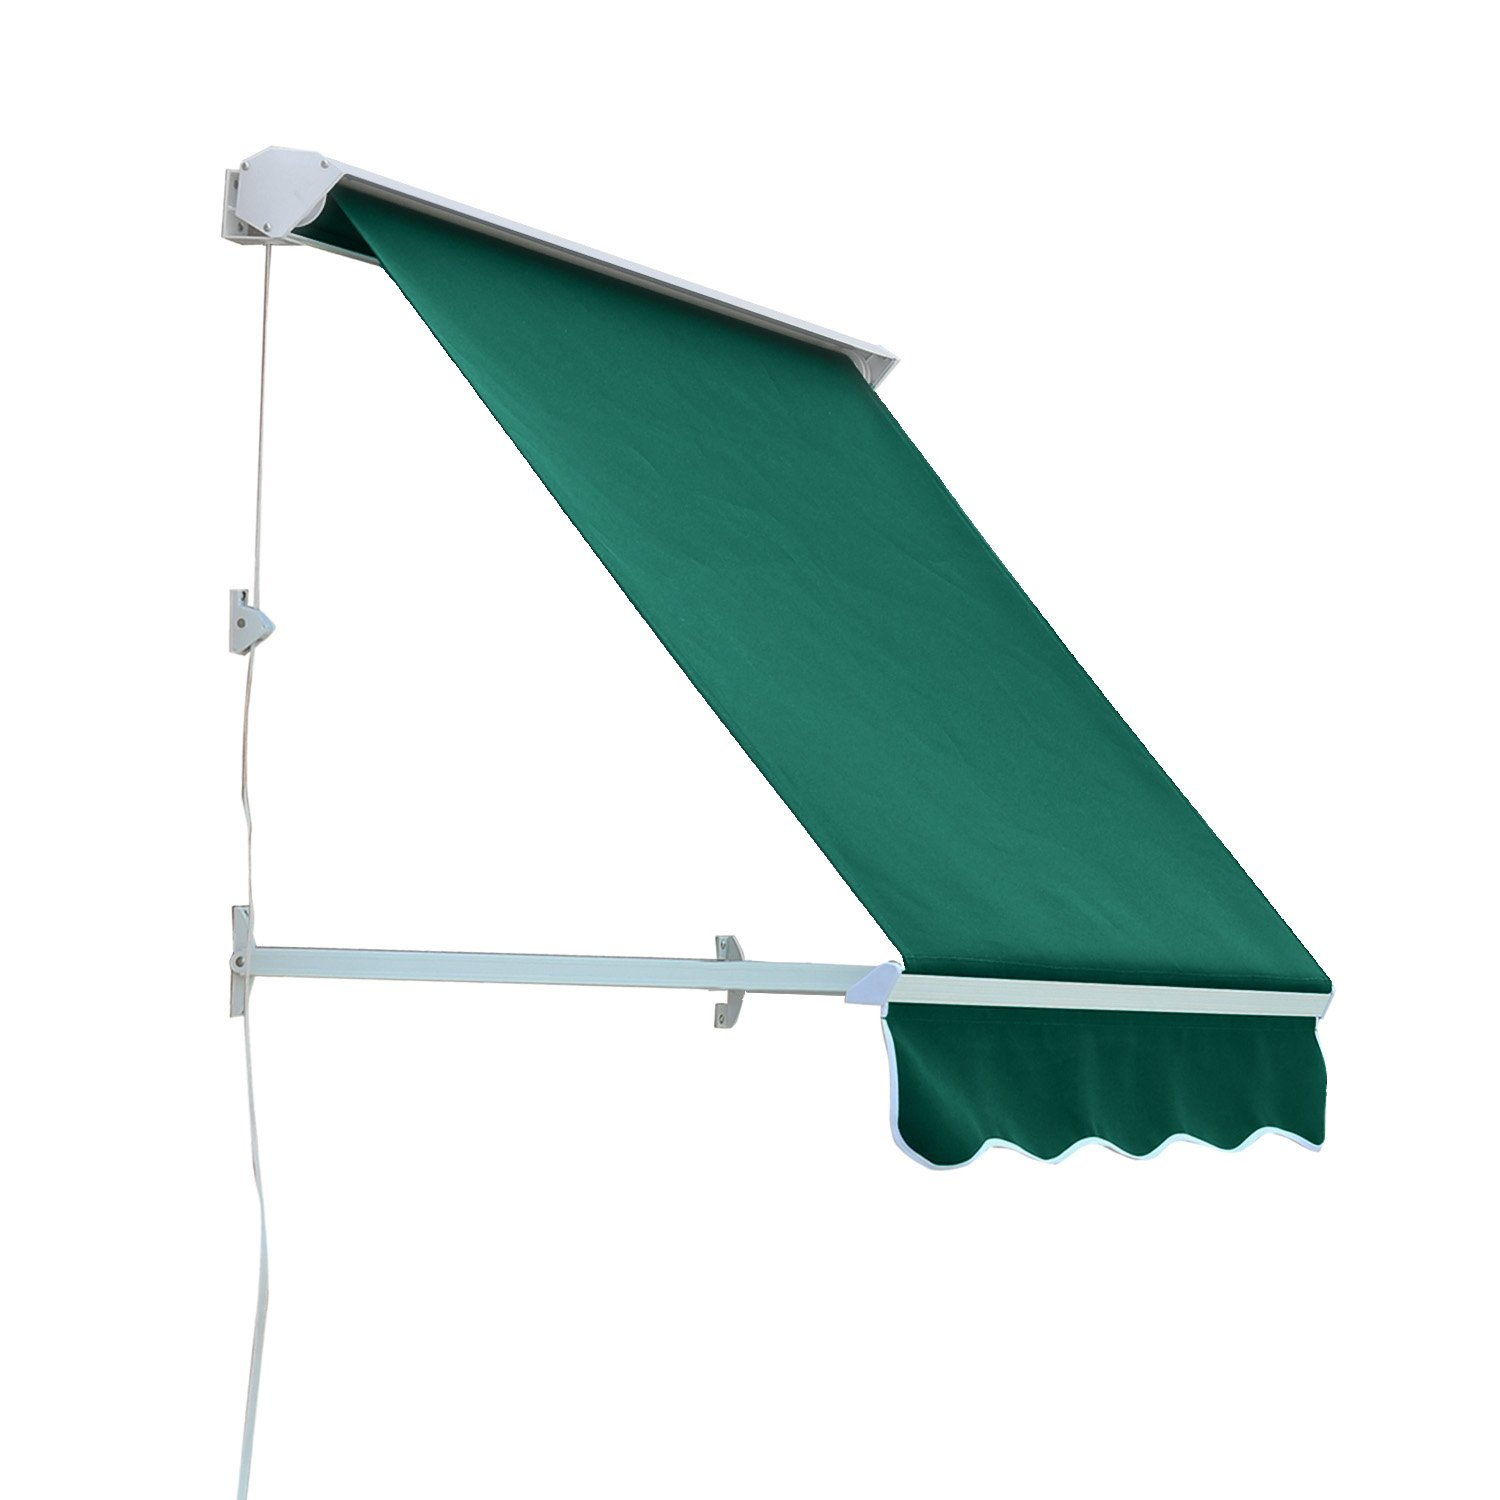 Outsunny Drop Arm Manual Retractable Window Awning, 4-Feet, Deep Green